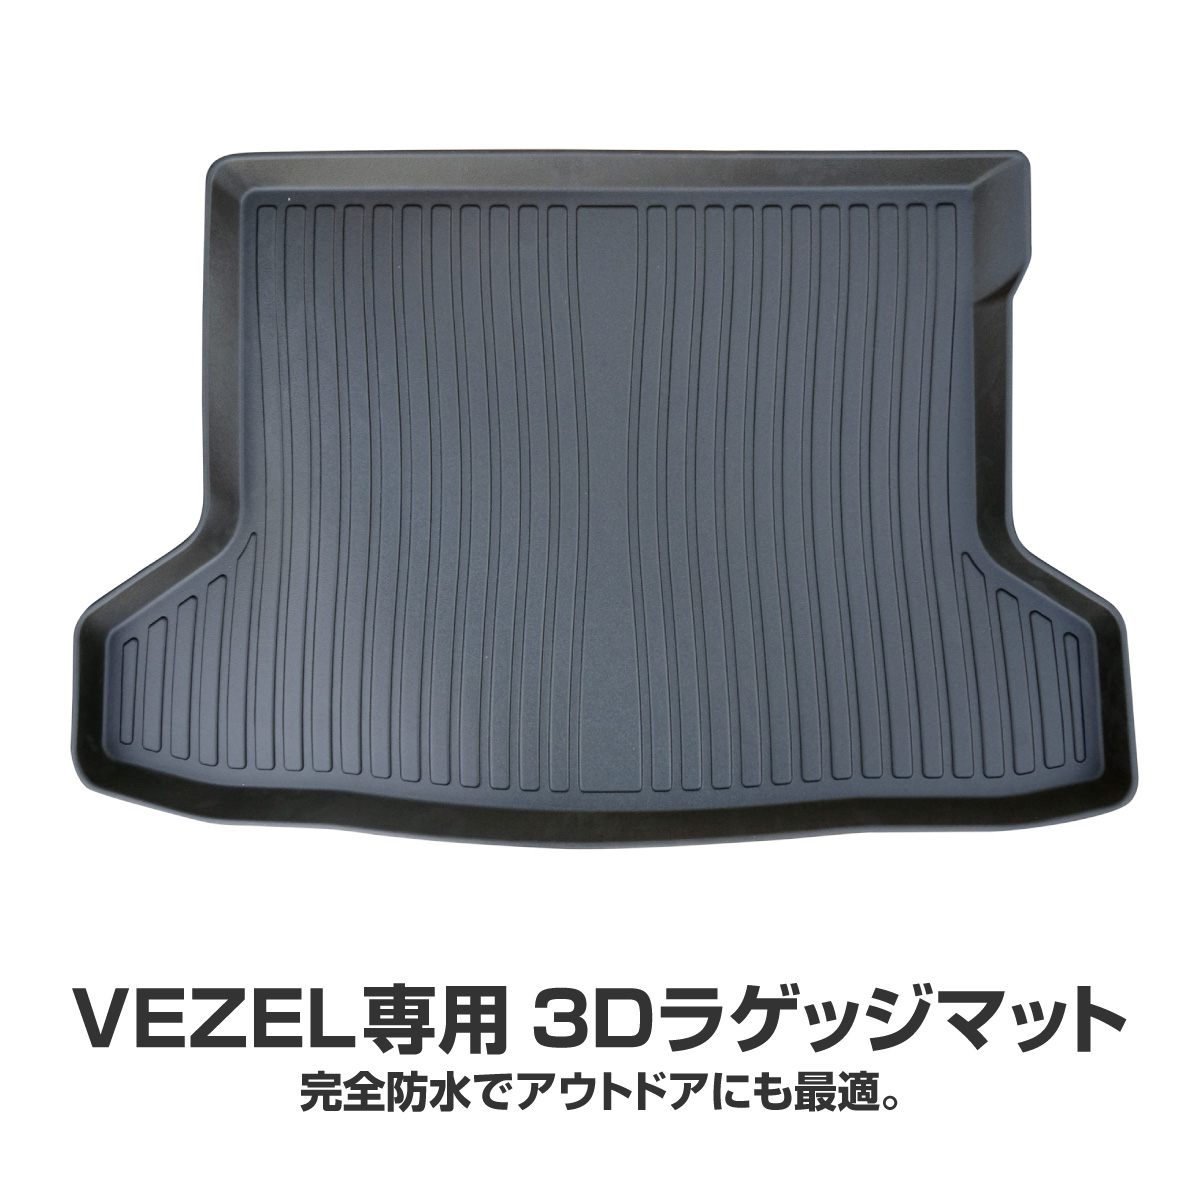 Honda Vesel Luggage Mat Molded Tpe Material Waterproof Lightweight Trunk Floor Mats Rubber Vezel Bezel Interior Parts